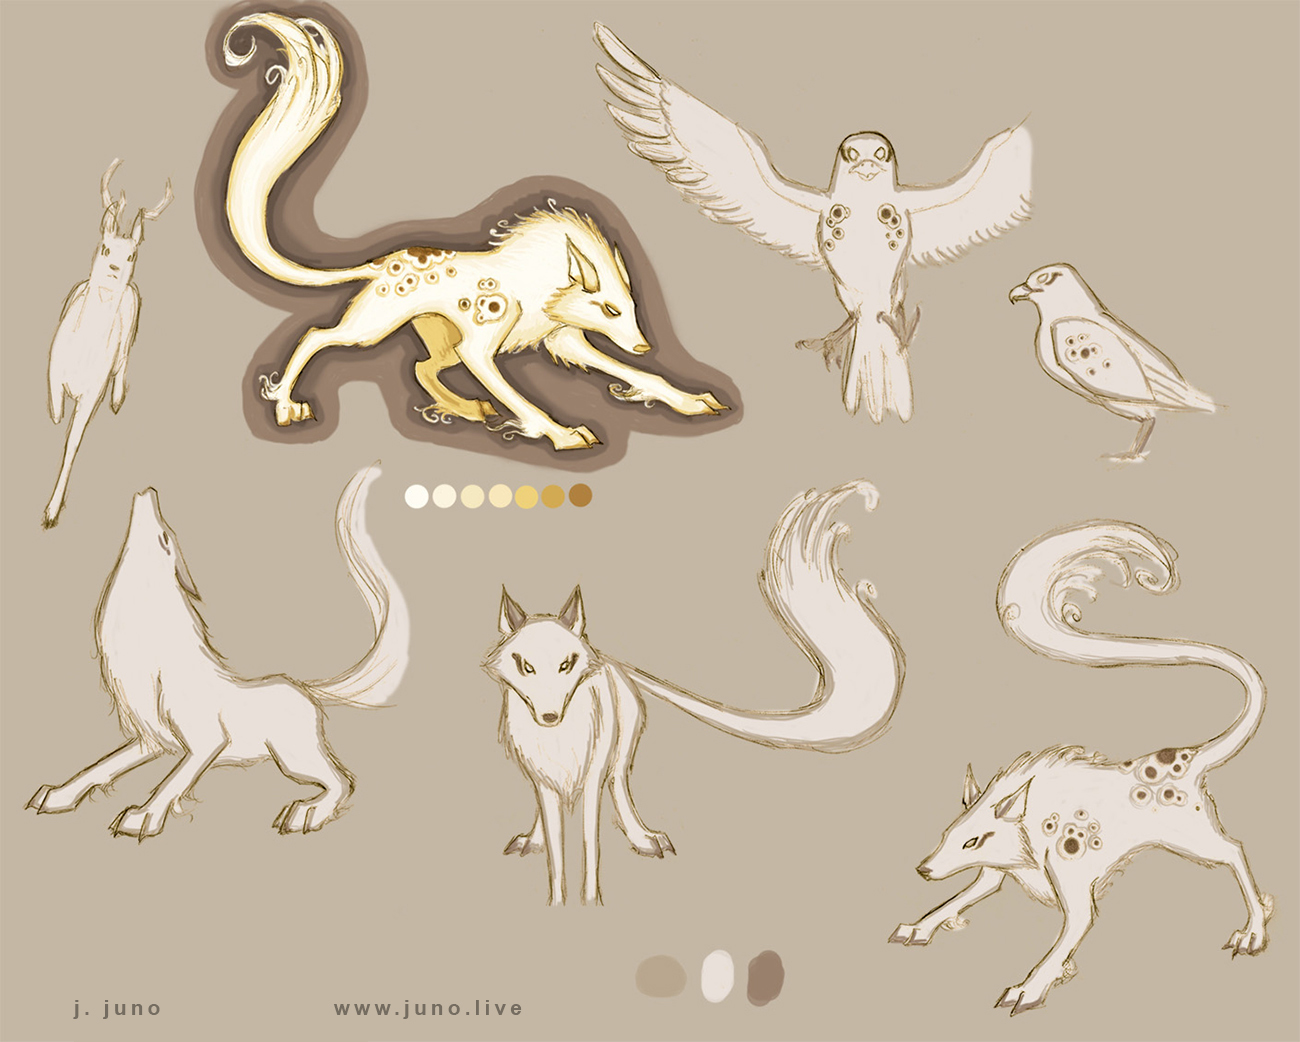 character_sheet_animals_by_jjuno_web.jpg